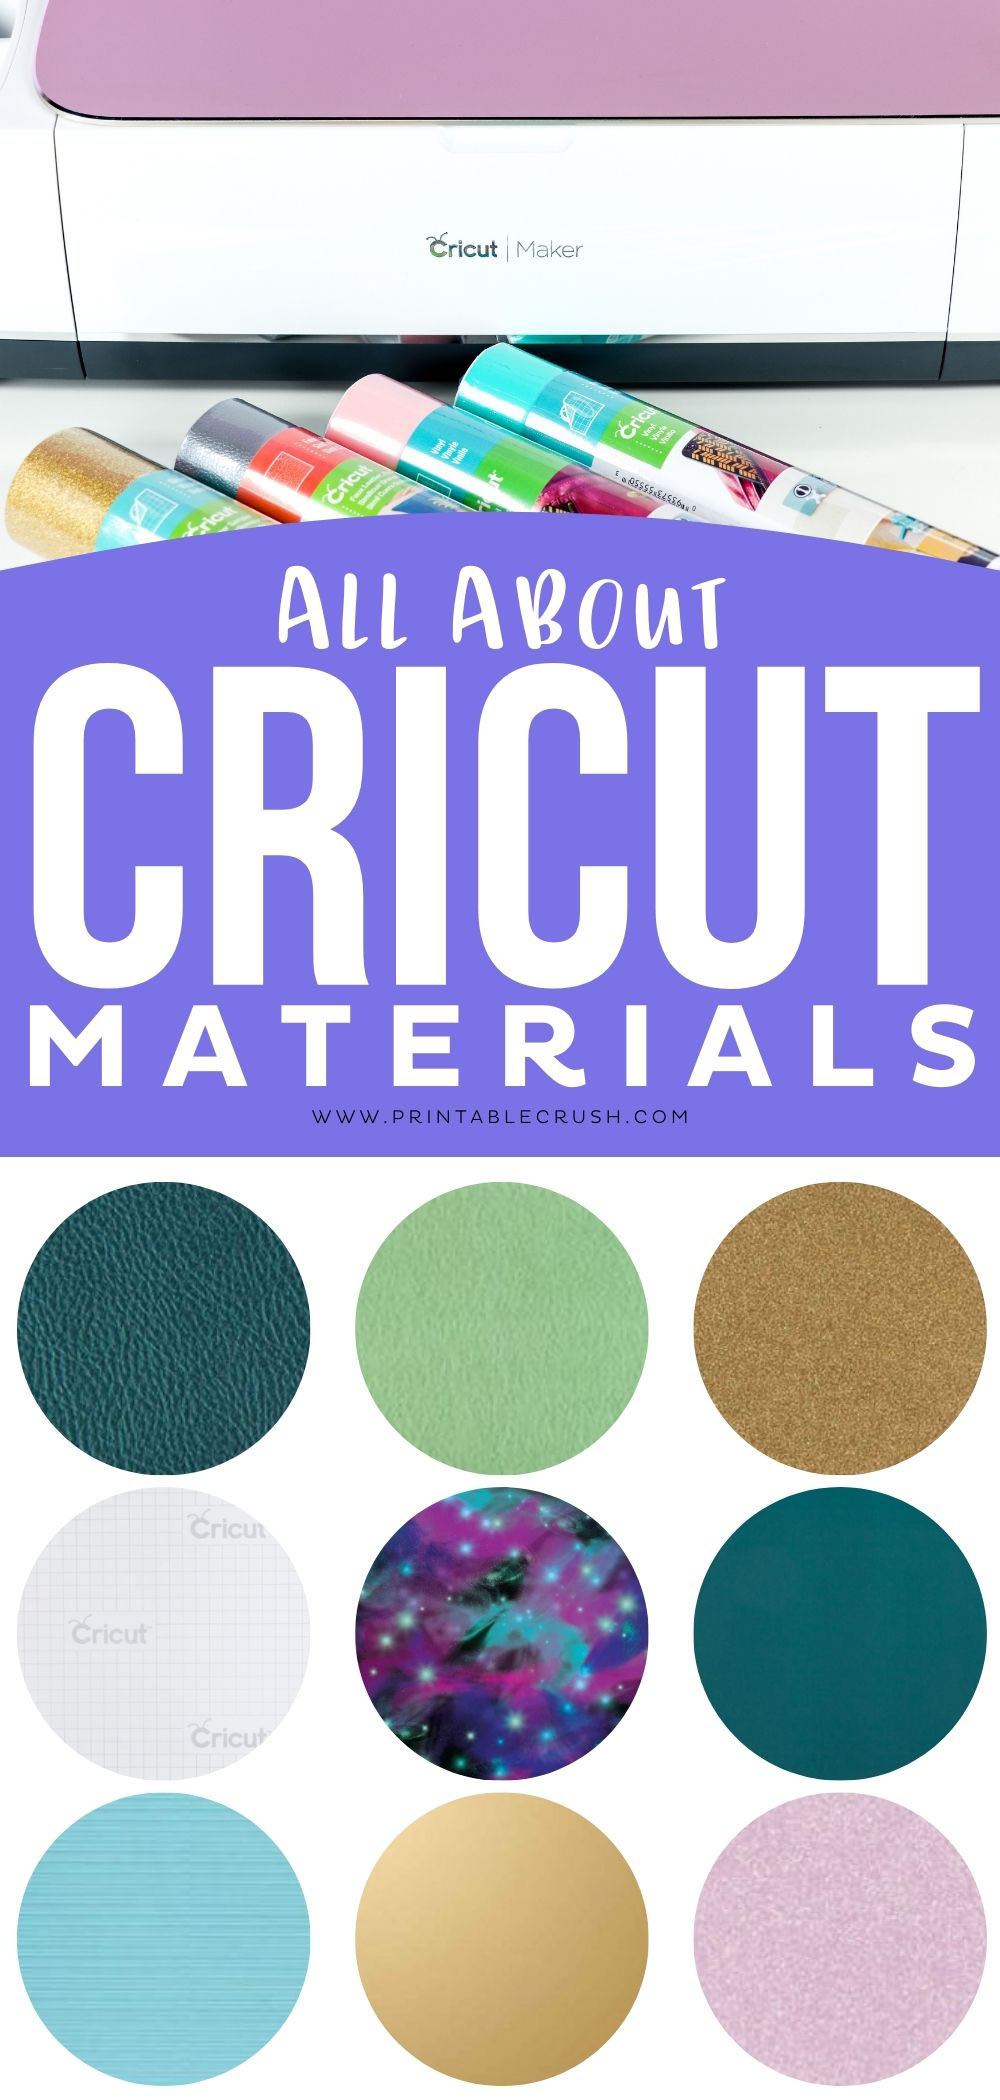 What is the Difference between materials and uses for the Cricut? Let me tell you all about Cricut Iron-On, Vinyl, Infusible Ink, and MORE! #ad #cricut #cricutmade #cricutmaterials via @printablecrush